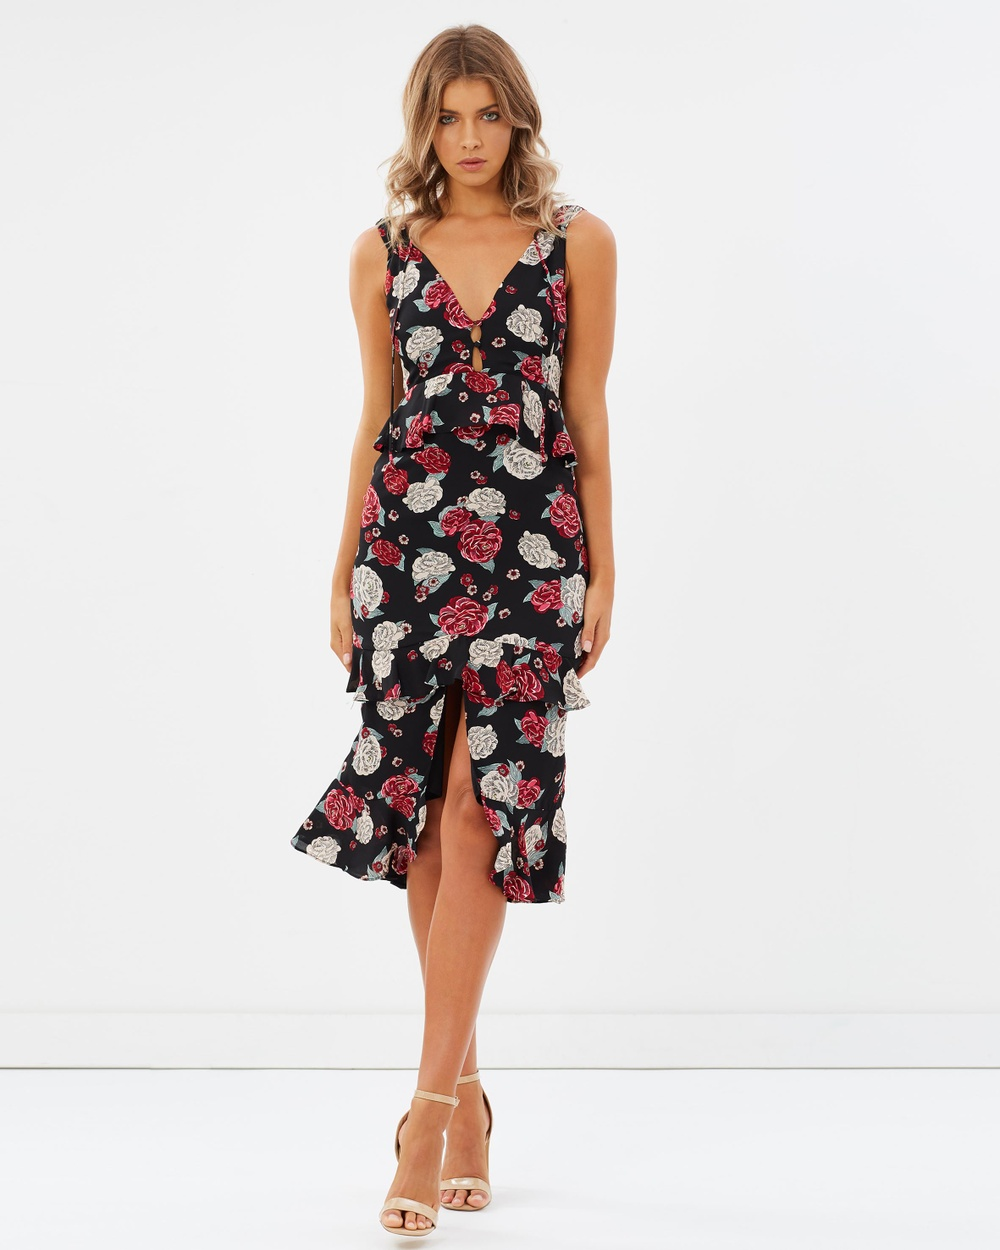 Atmos & Here ICONIC EXCLUSIVE Gretal Ruffle Midi Dress Printed Dresses Black Base Floral ICONIC EXCLUSIVE Gretal Ruffle Midi Dress